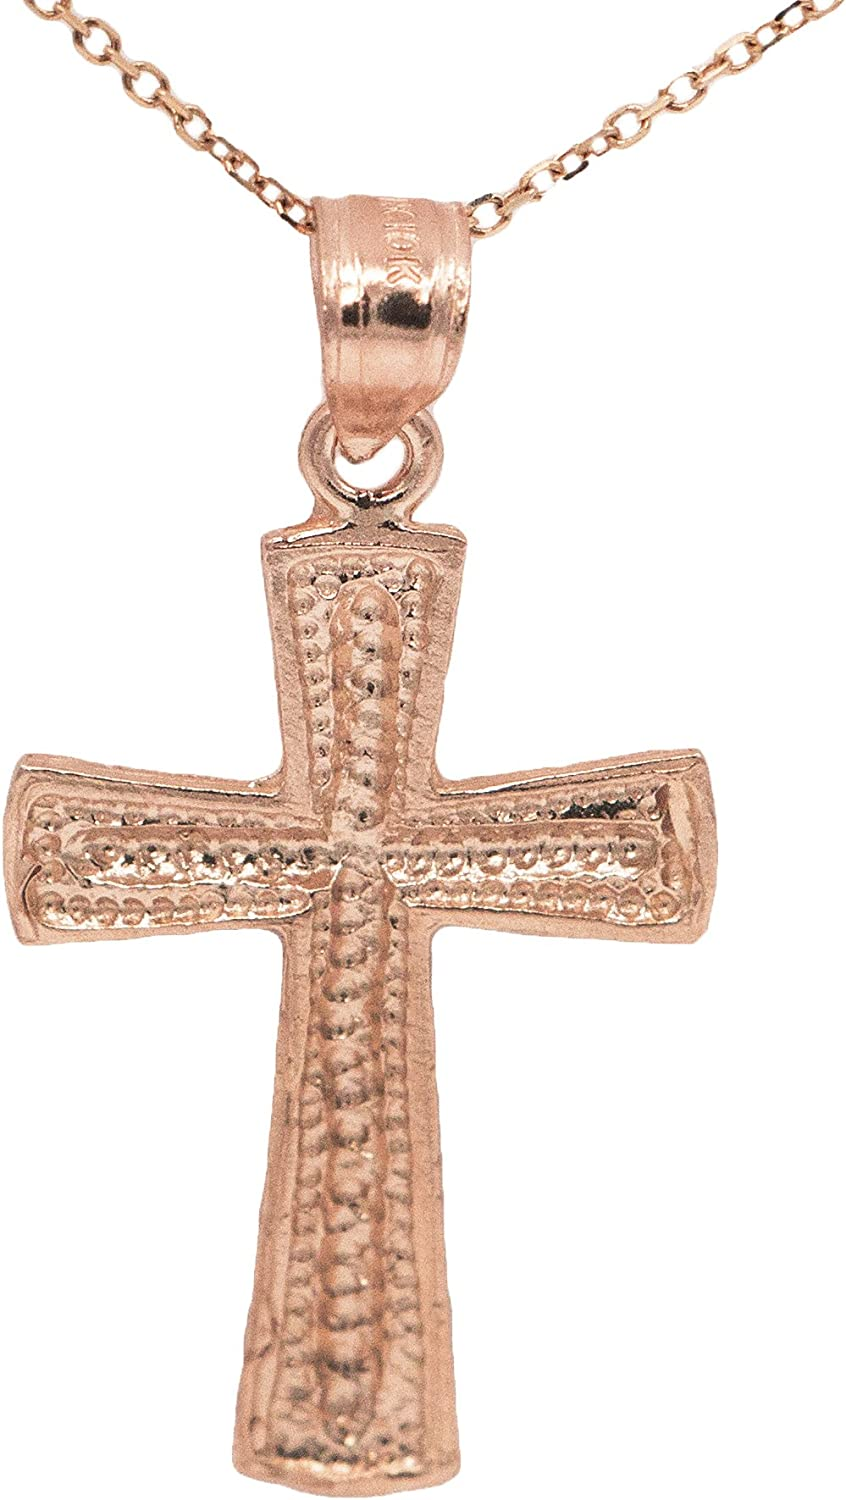 Ice on Fire Jewelry 14k Rose Gold Cross Pendant Necklace